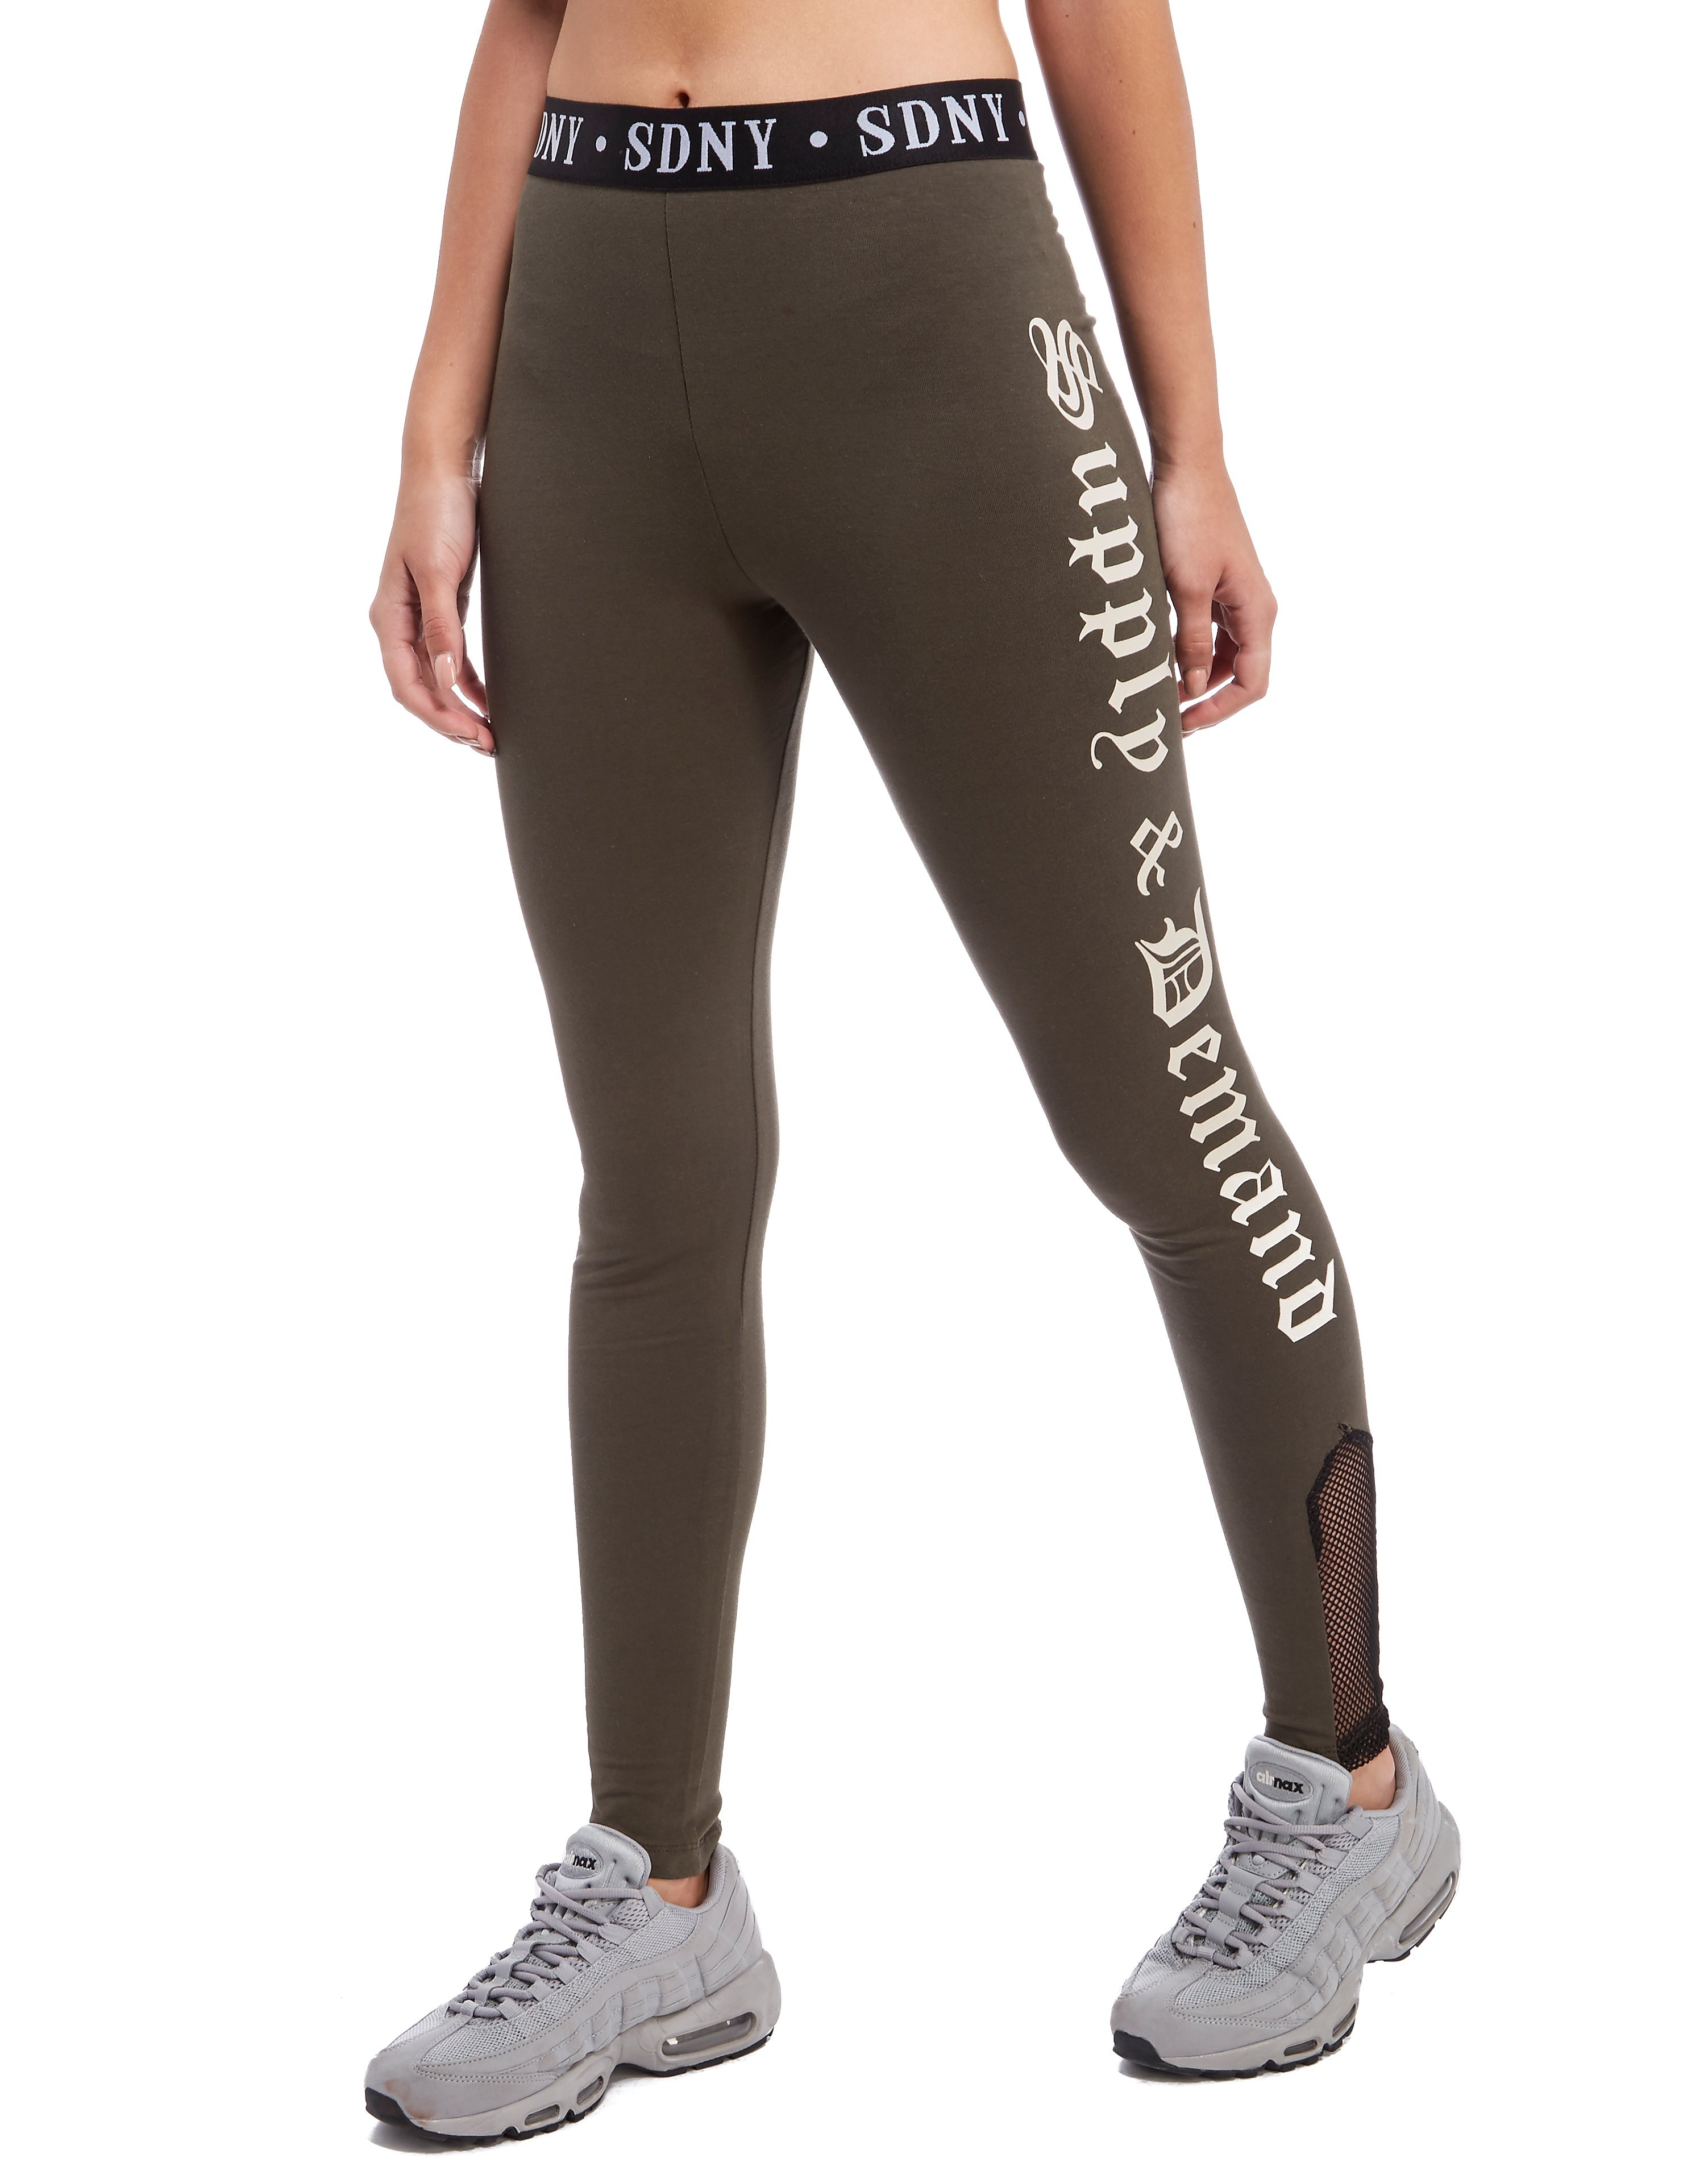 Supply & Demand Highwaist Mesh Leggings